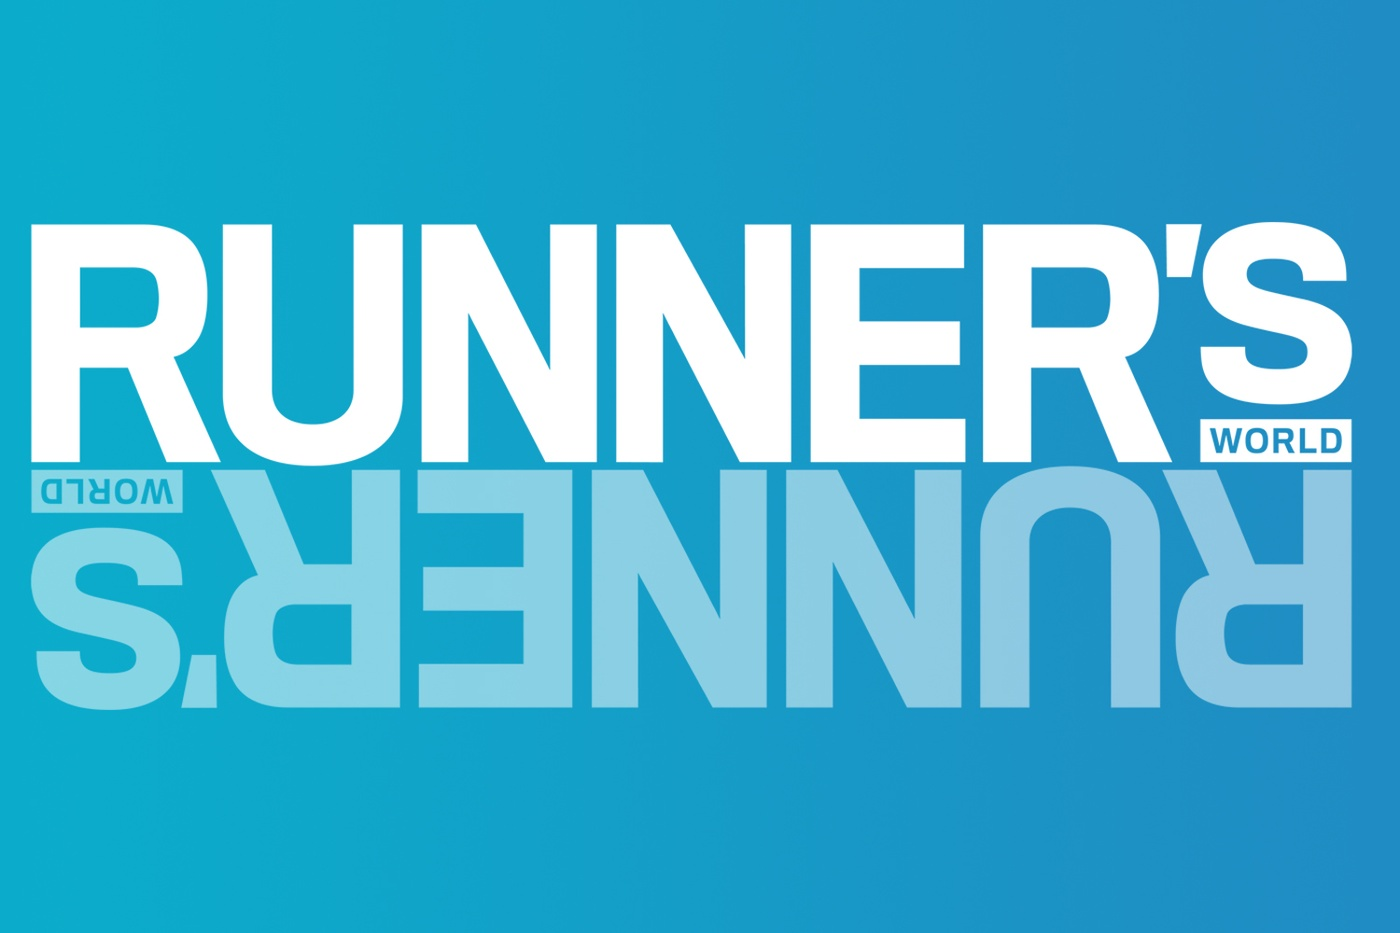 RUNNER'S WORLD Podcast